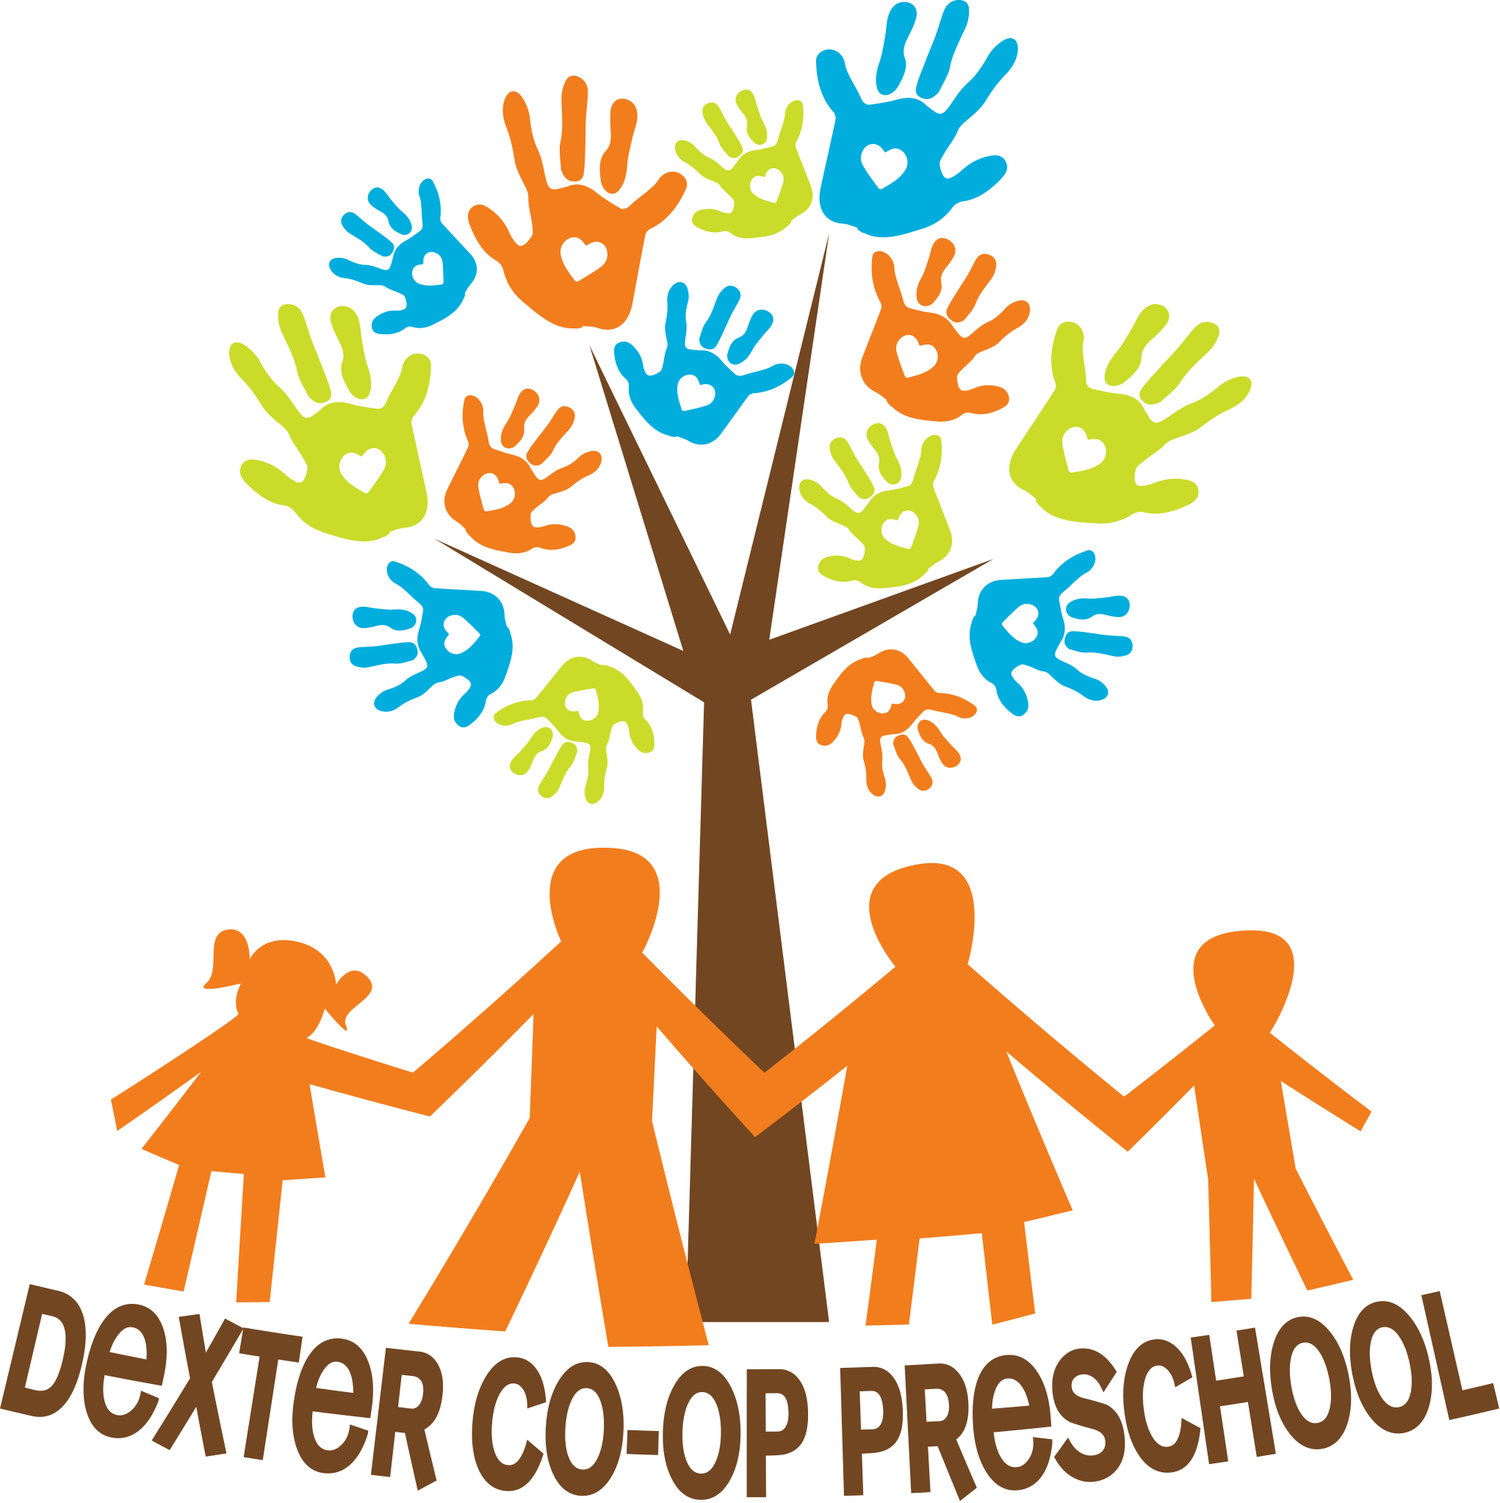 Dexter Cooperative Nursery School